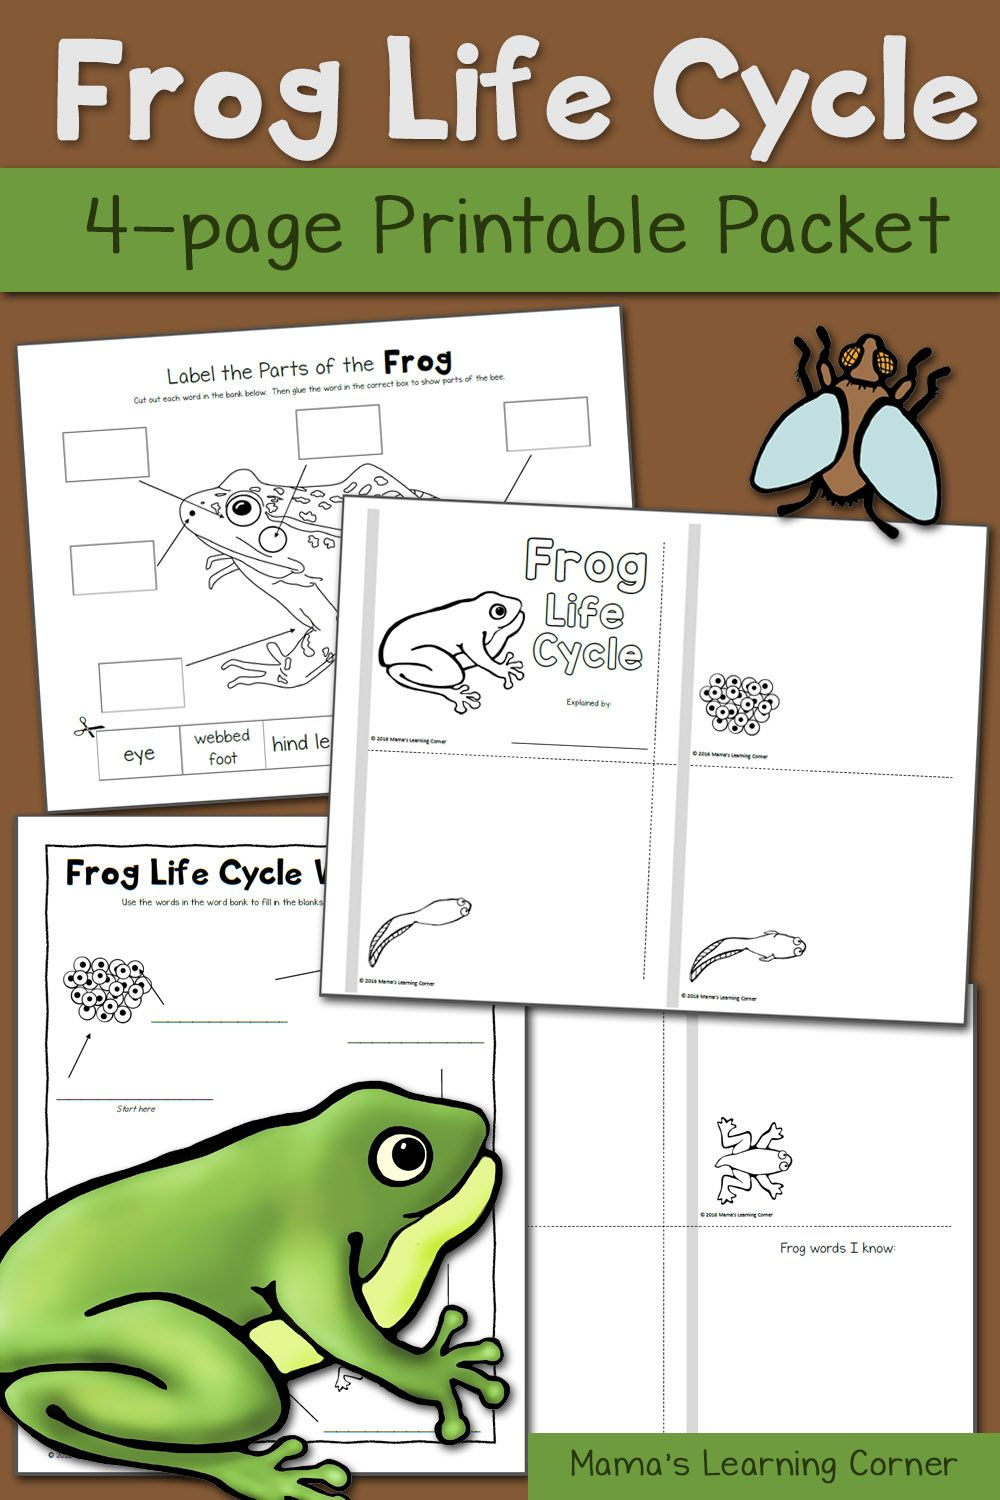 Worksheets Frog Life Cycle Worksheet frog life cycle worksheets pinterest cycles frogs and spring is the perfect time to study dont you think theres something about newness it brings that make